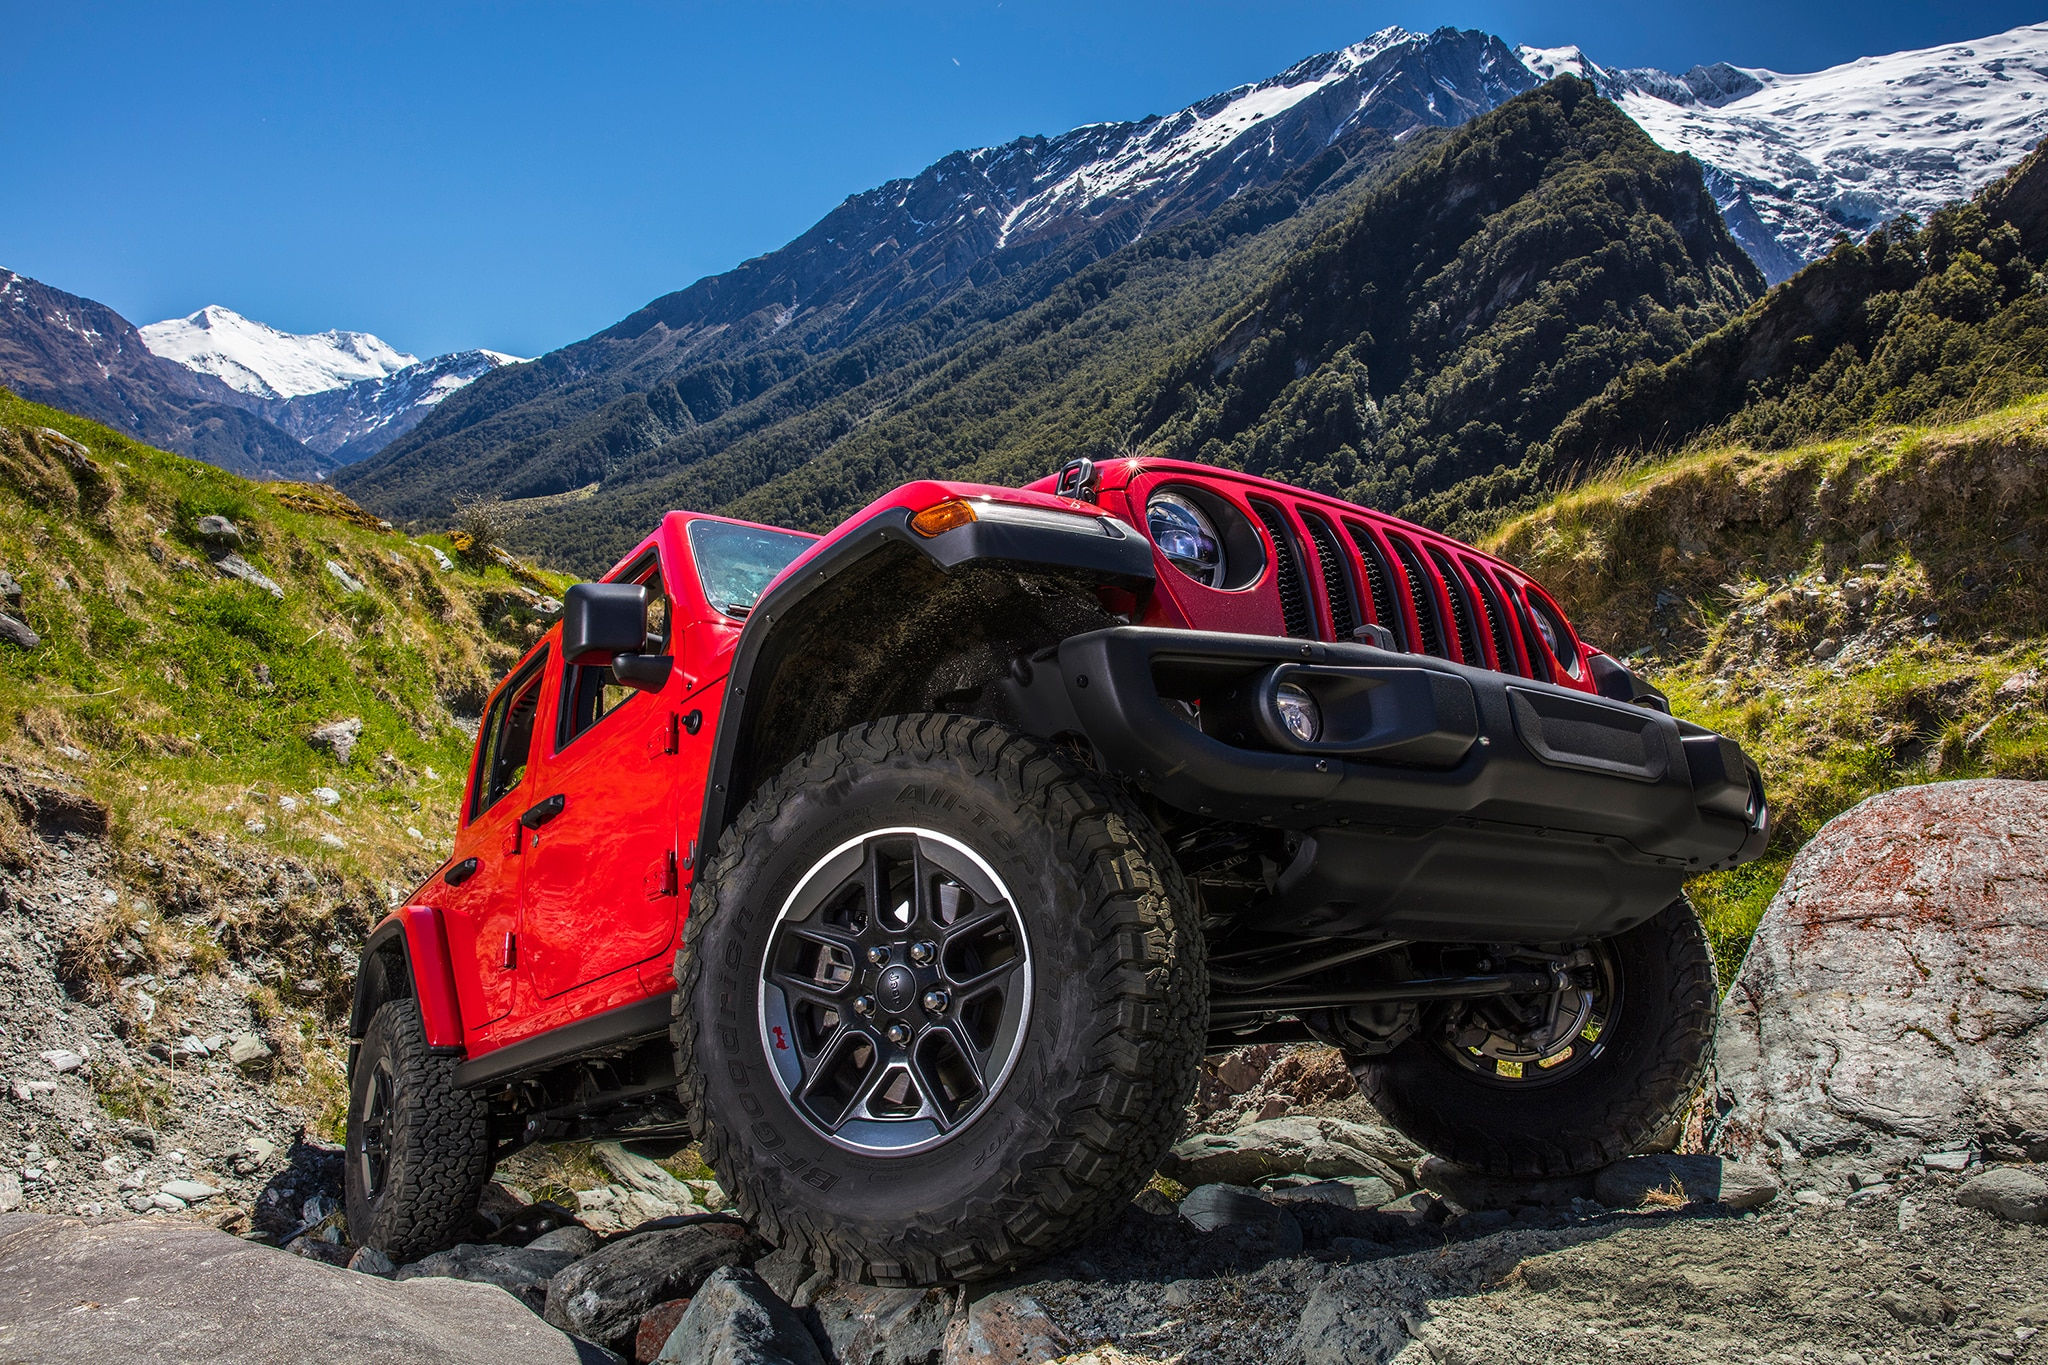 2018 Jeep Jl Mpg >> 2018 Jeep Wrangler Rubicon First Drive Review | Automobile Magazine